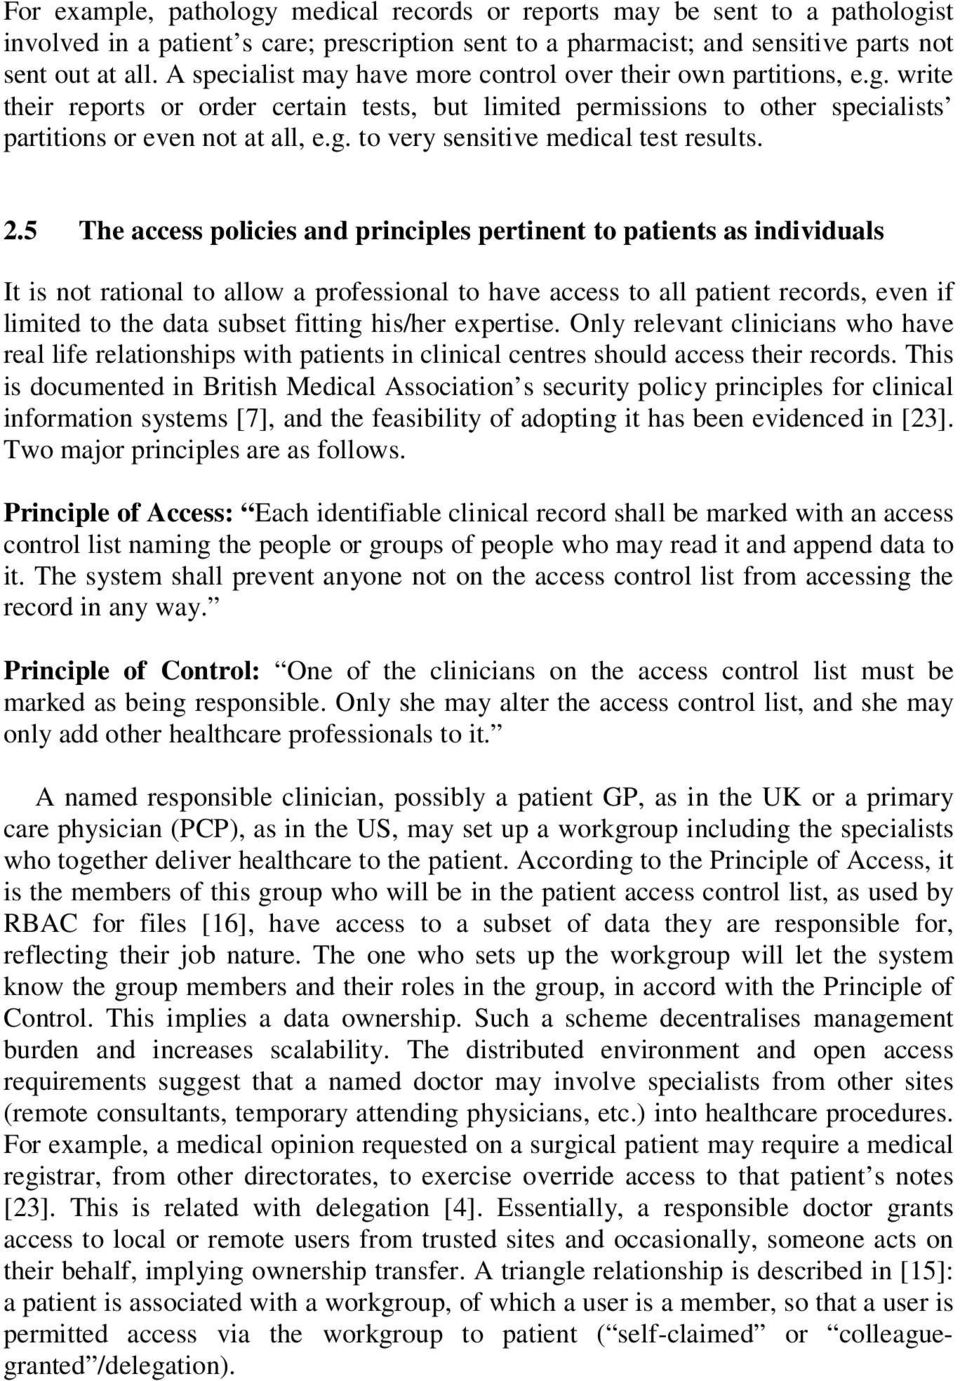 2.5 The access policies and principles pertinent to patients as individuals It is not rational to allow a professional to have access to all patient records, even if limited to the data subset